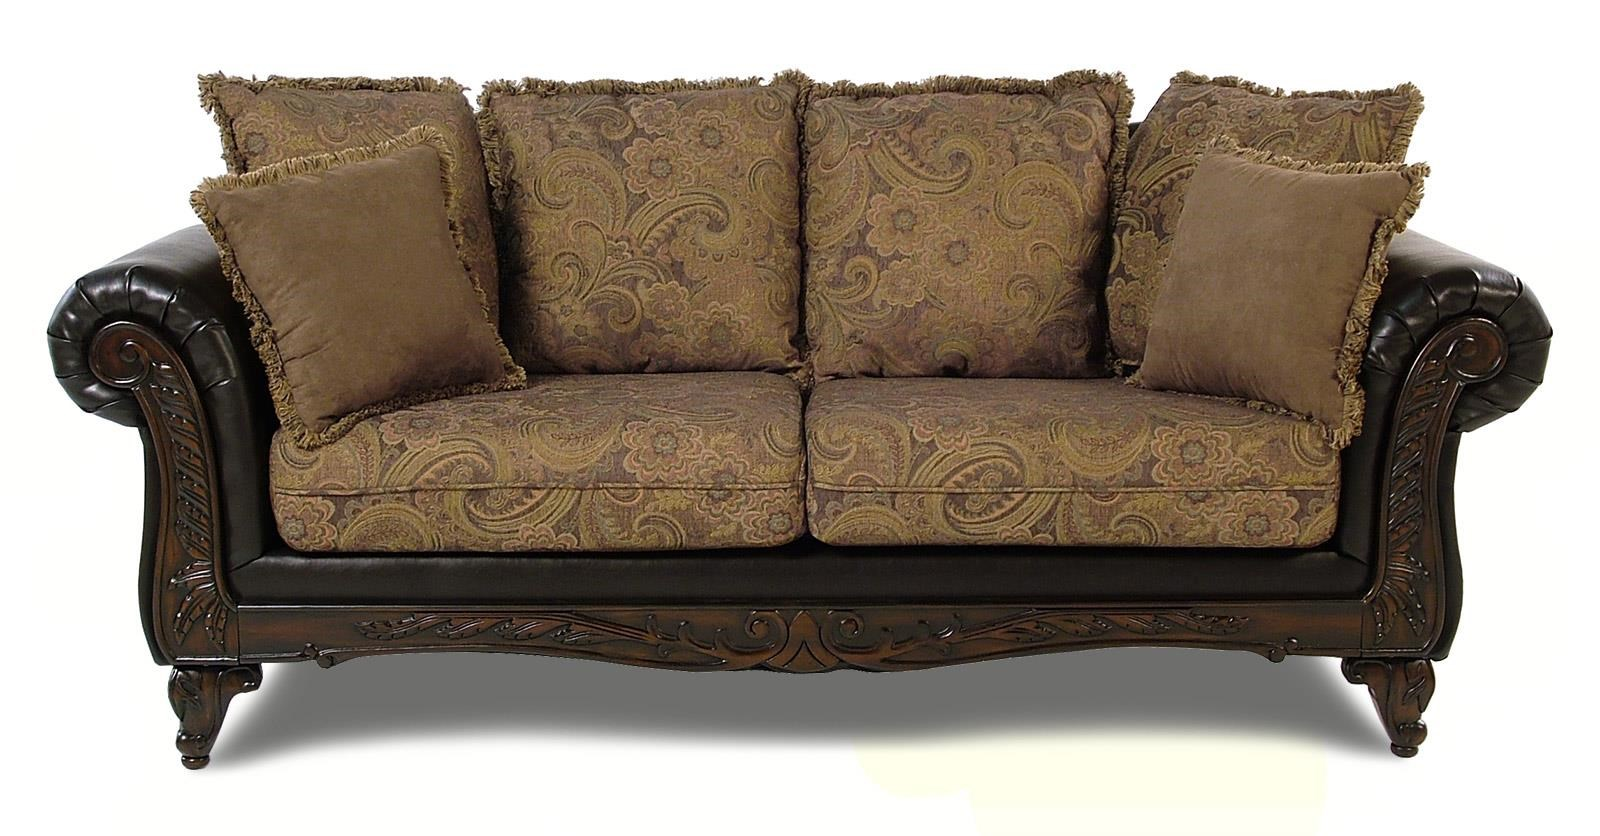 Serta Upholstery Monaco Pillow Back Sofa With Carved Wood Face